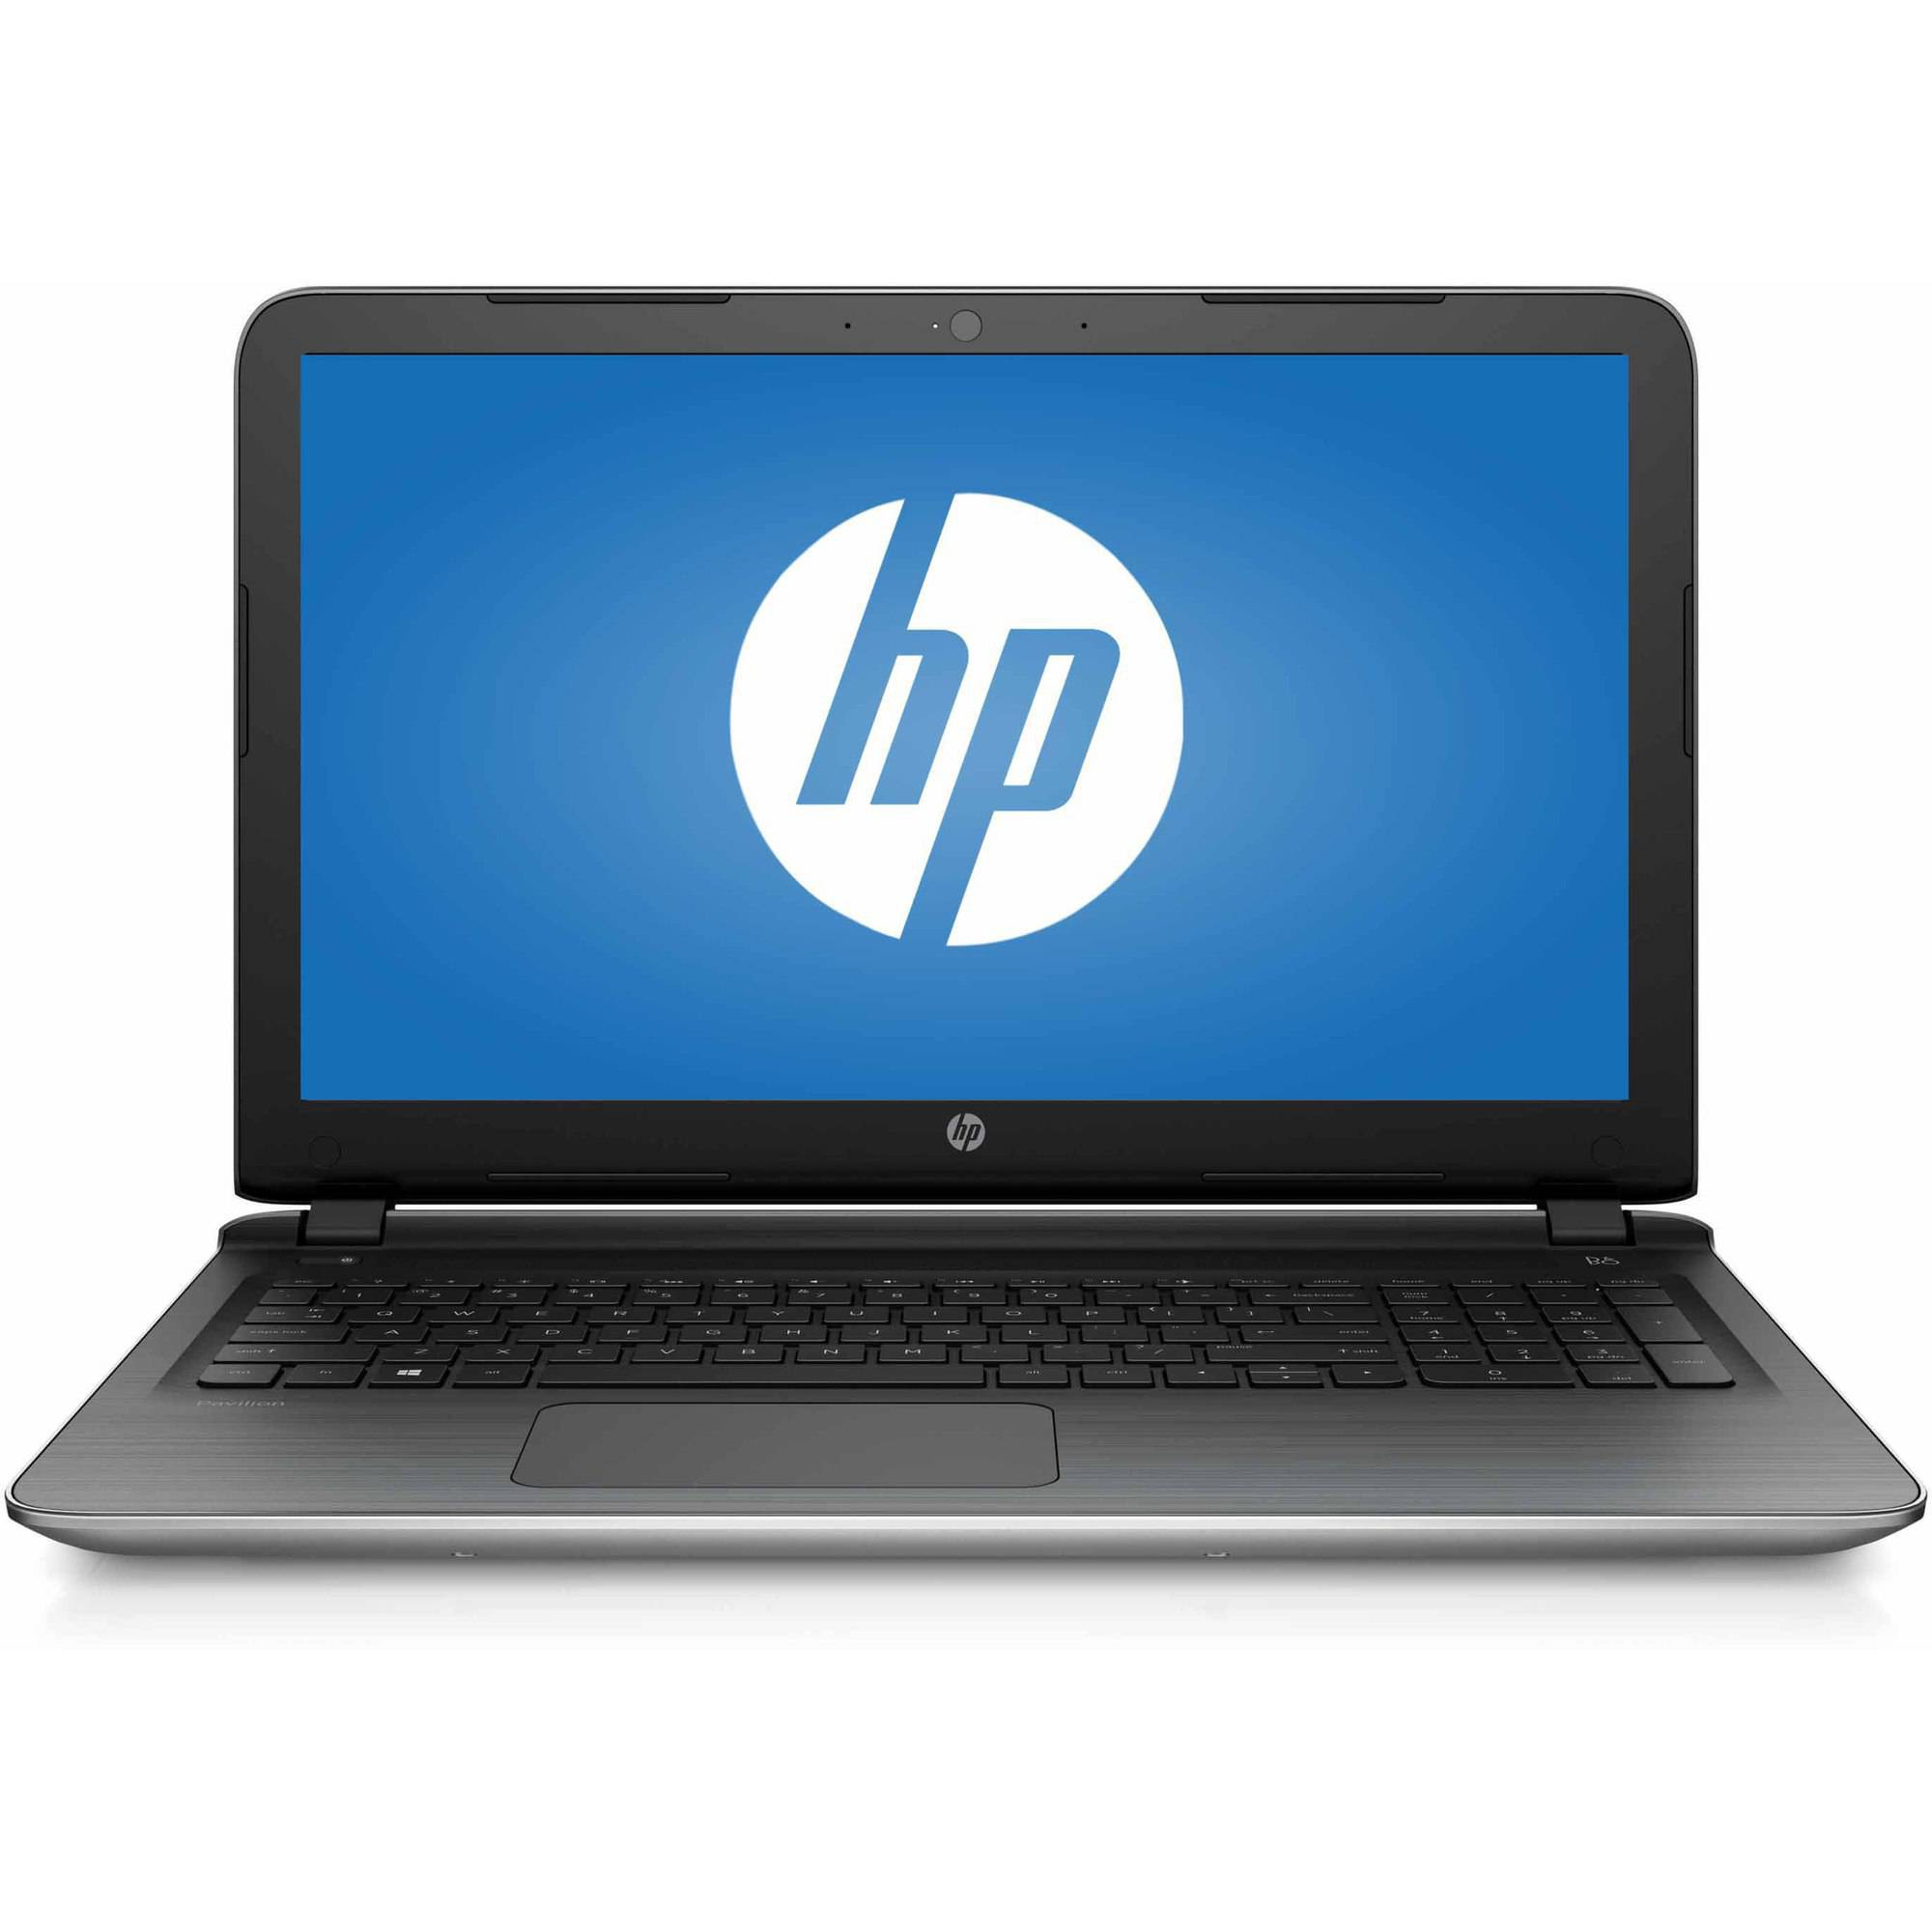 "Refurbished HP Silver 17.3"" Pavilion 17-g121wm Laptop PC with AMD A10-8700P Processor, 8GB Memory, 1TB Hard Drive... by Generic"